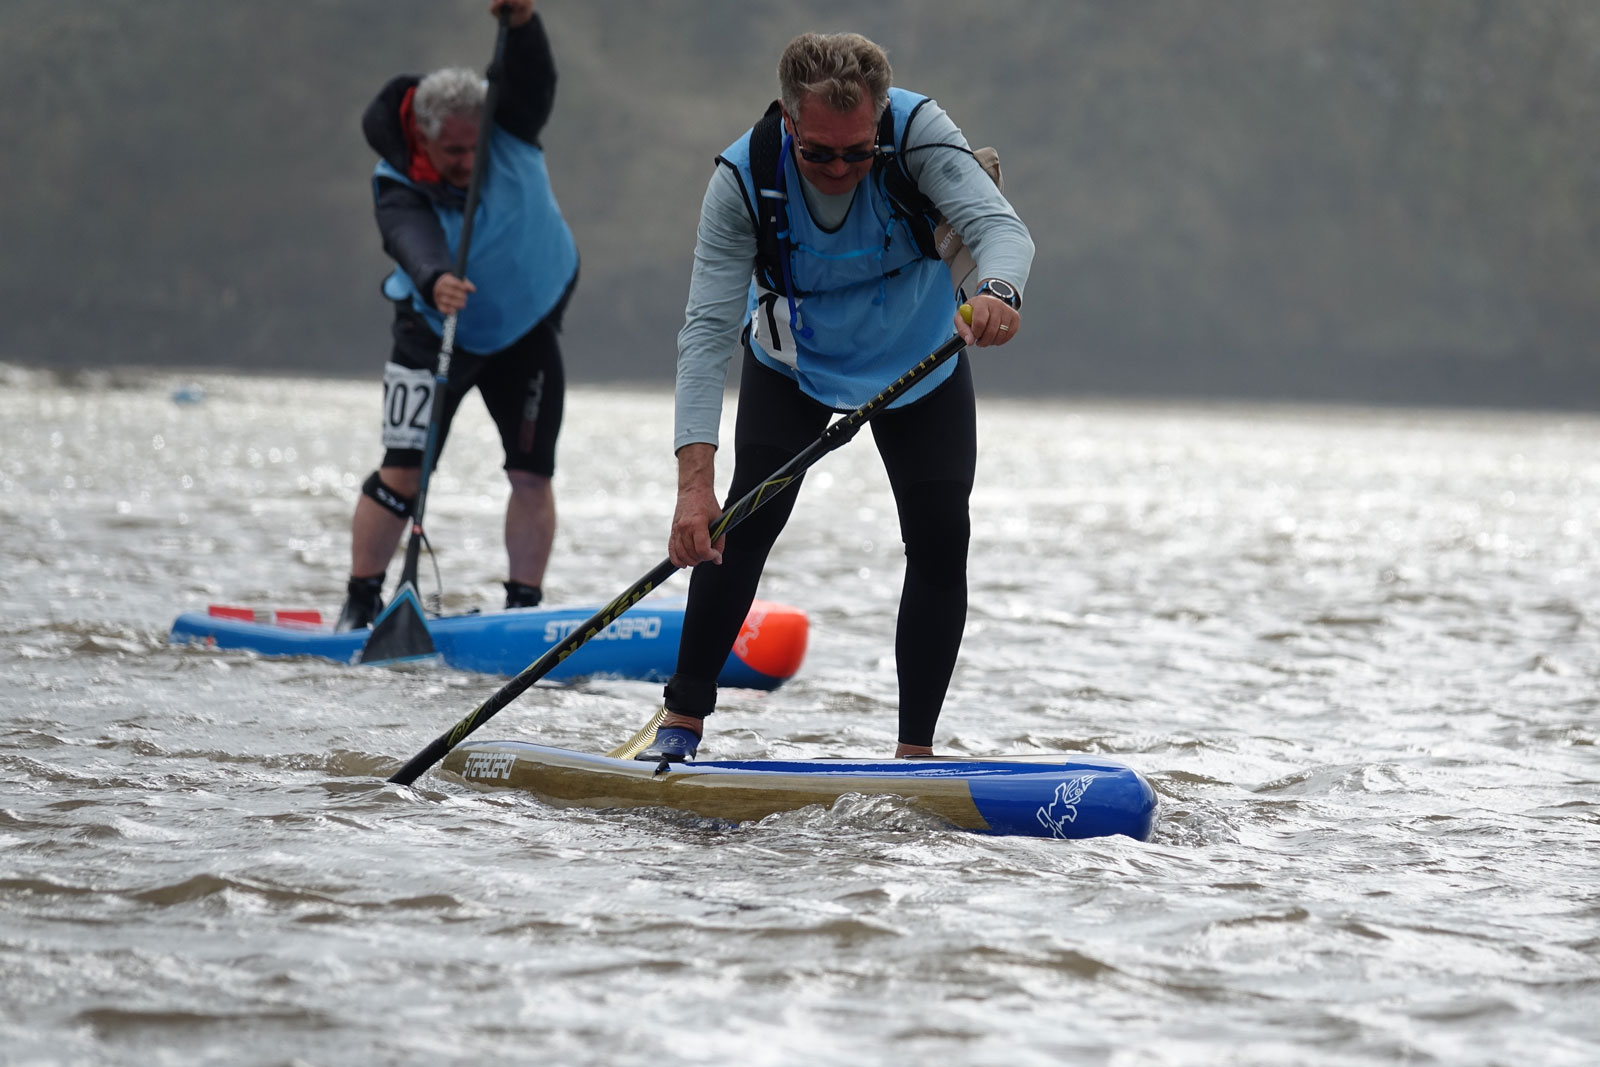 starboard-sup-Head-of-the-Dart-SUP-Challenge-2018-9